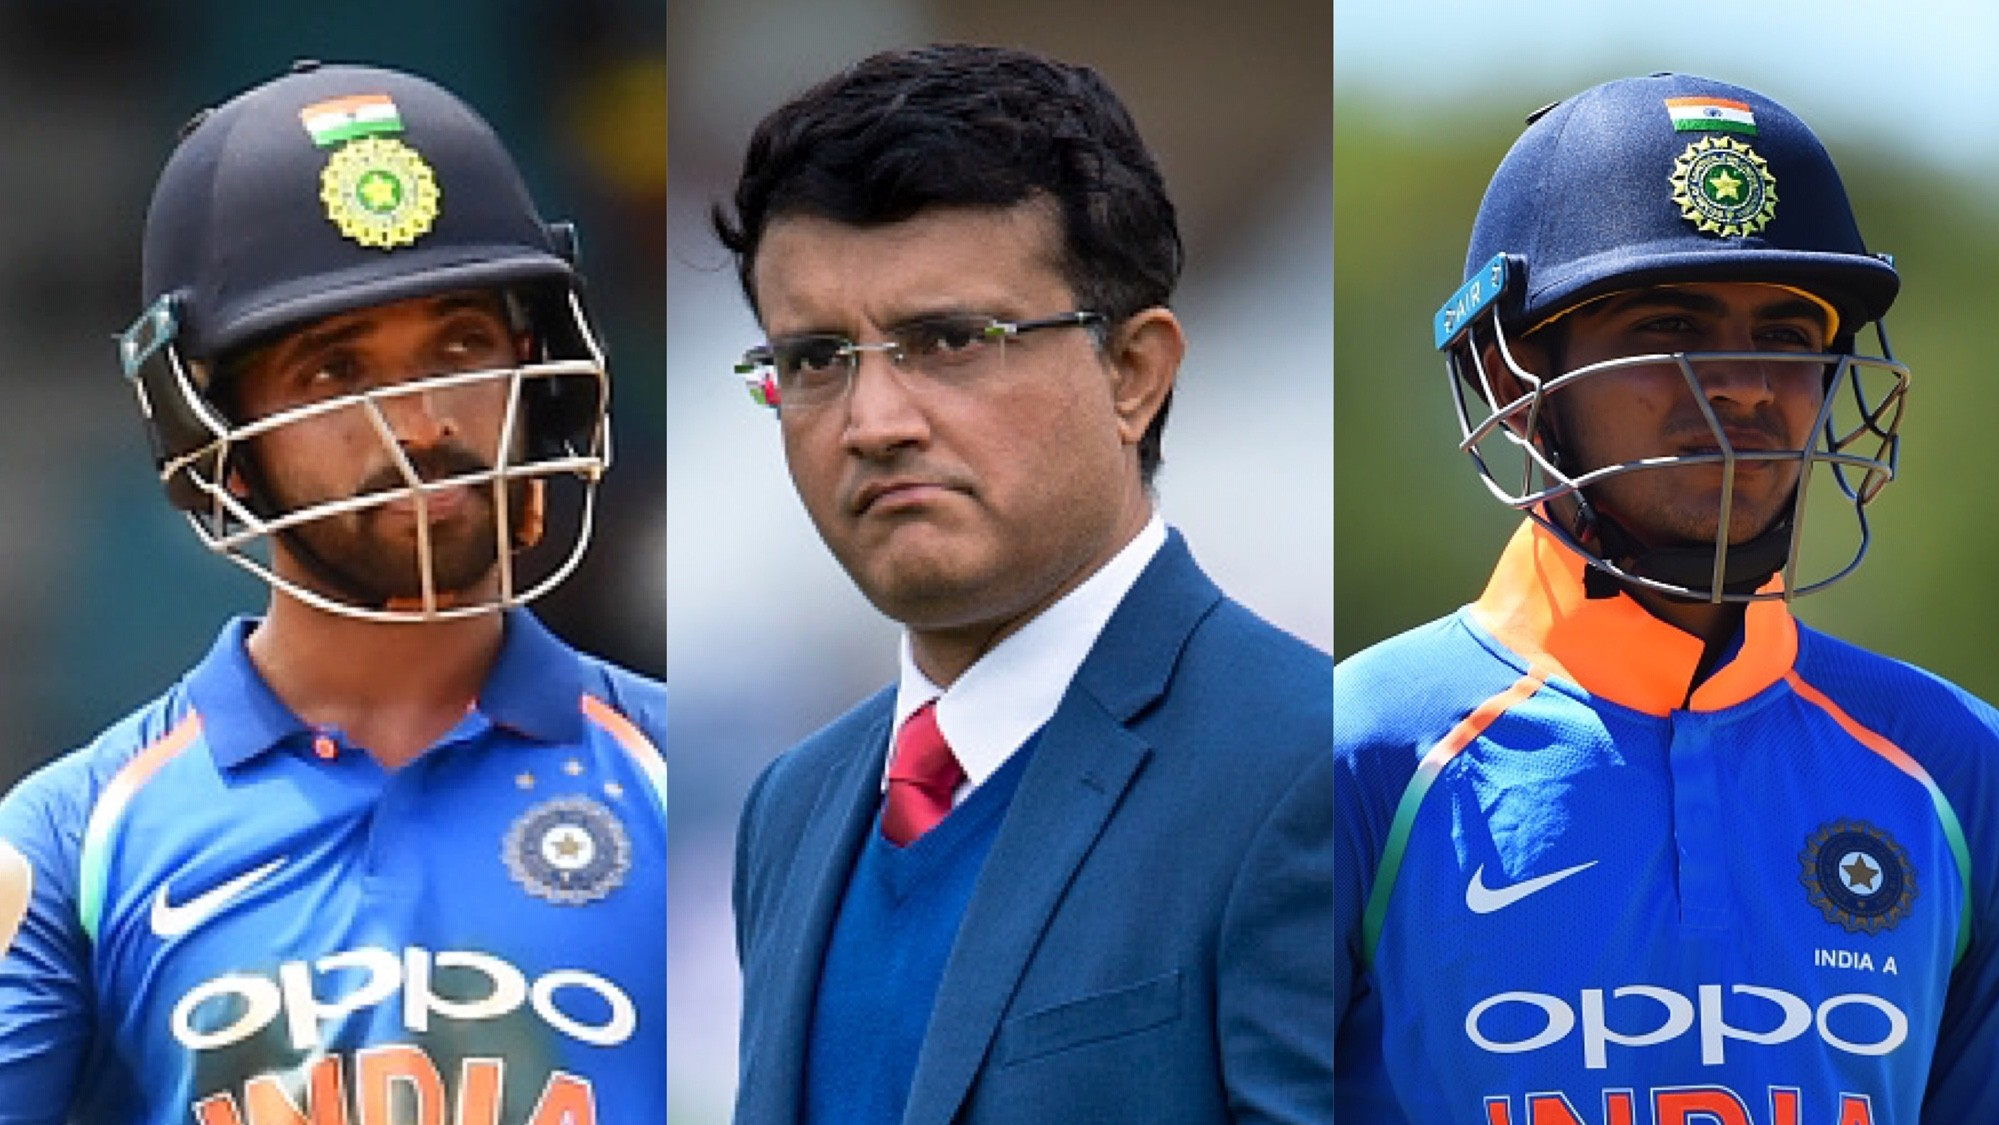 WI v IND 2019: Sourav Ganguly questions non-selection of Ajinkya Rahane and Shubman Gill in one-day team